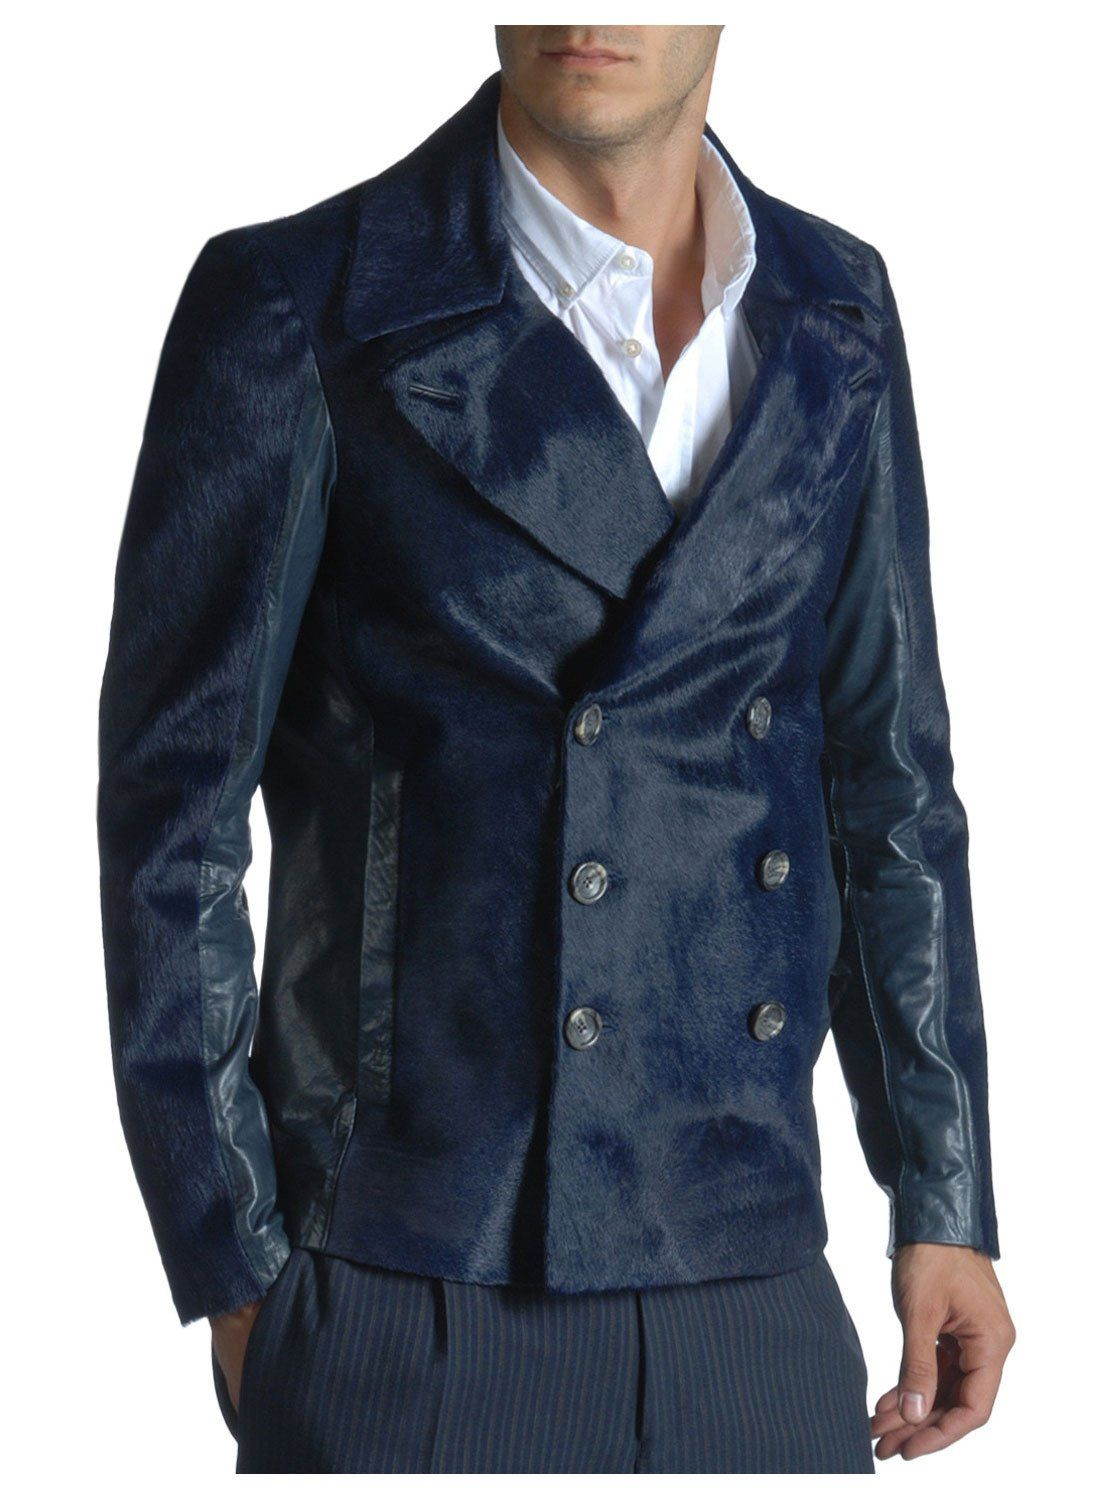 Diesel Black Gold Largoan Peacoat 36 Regular